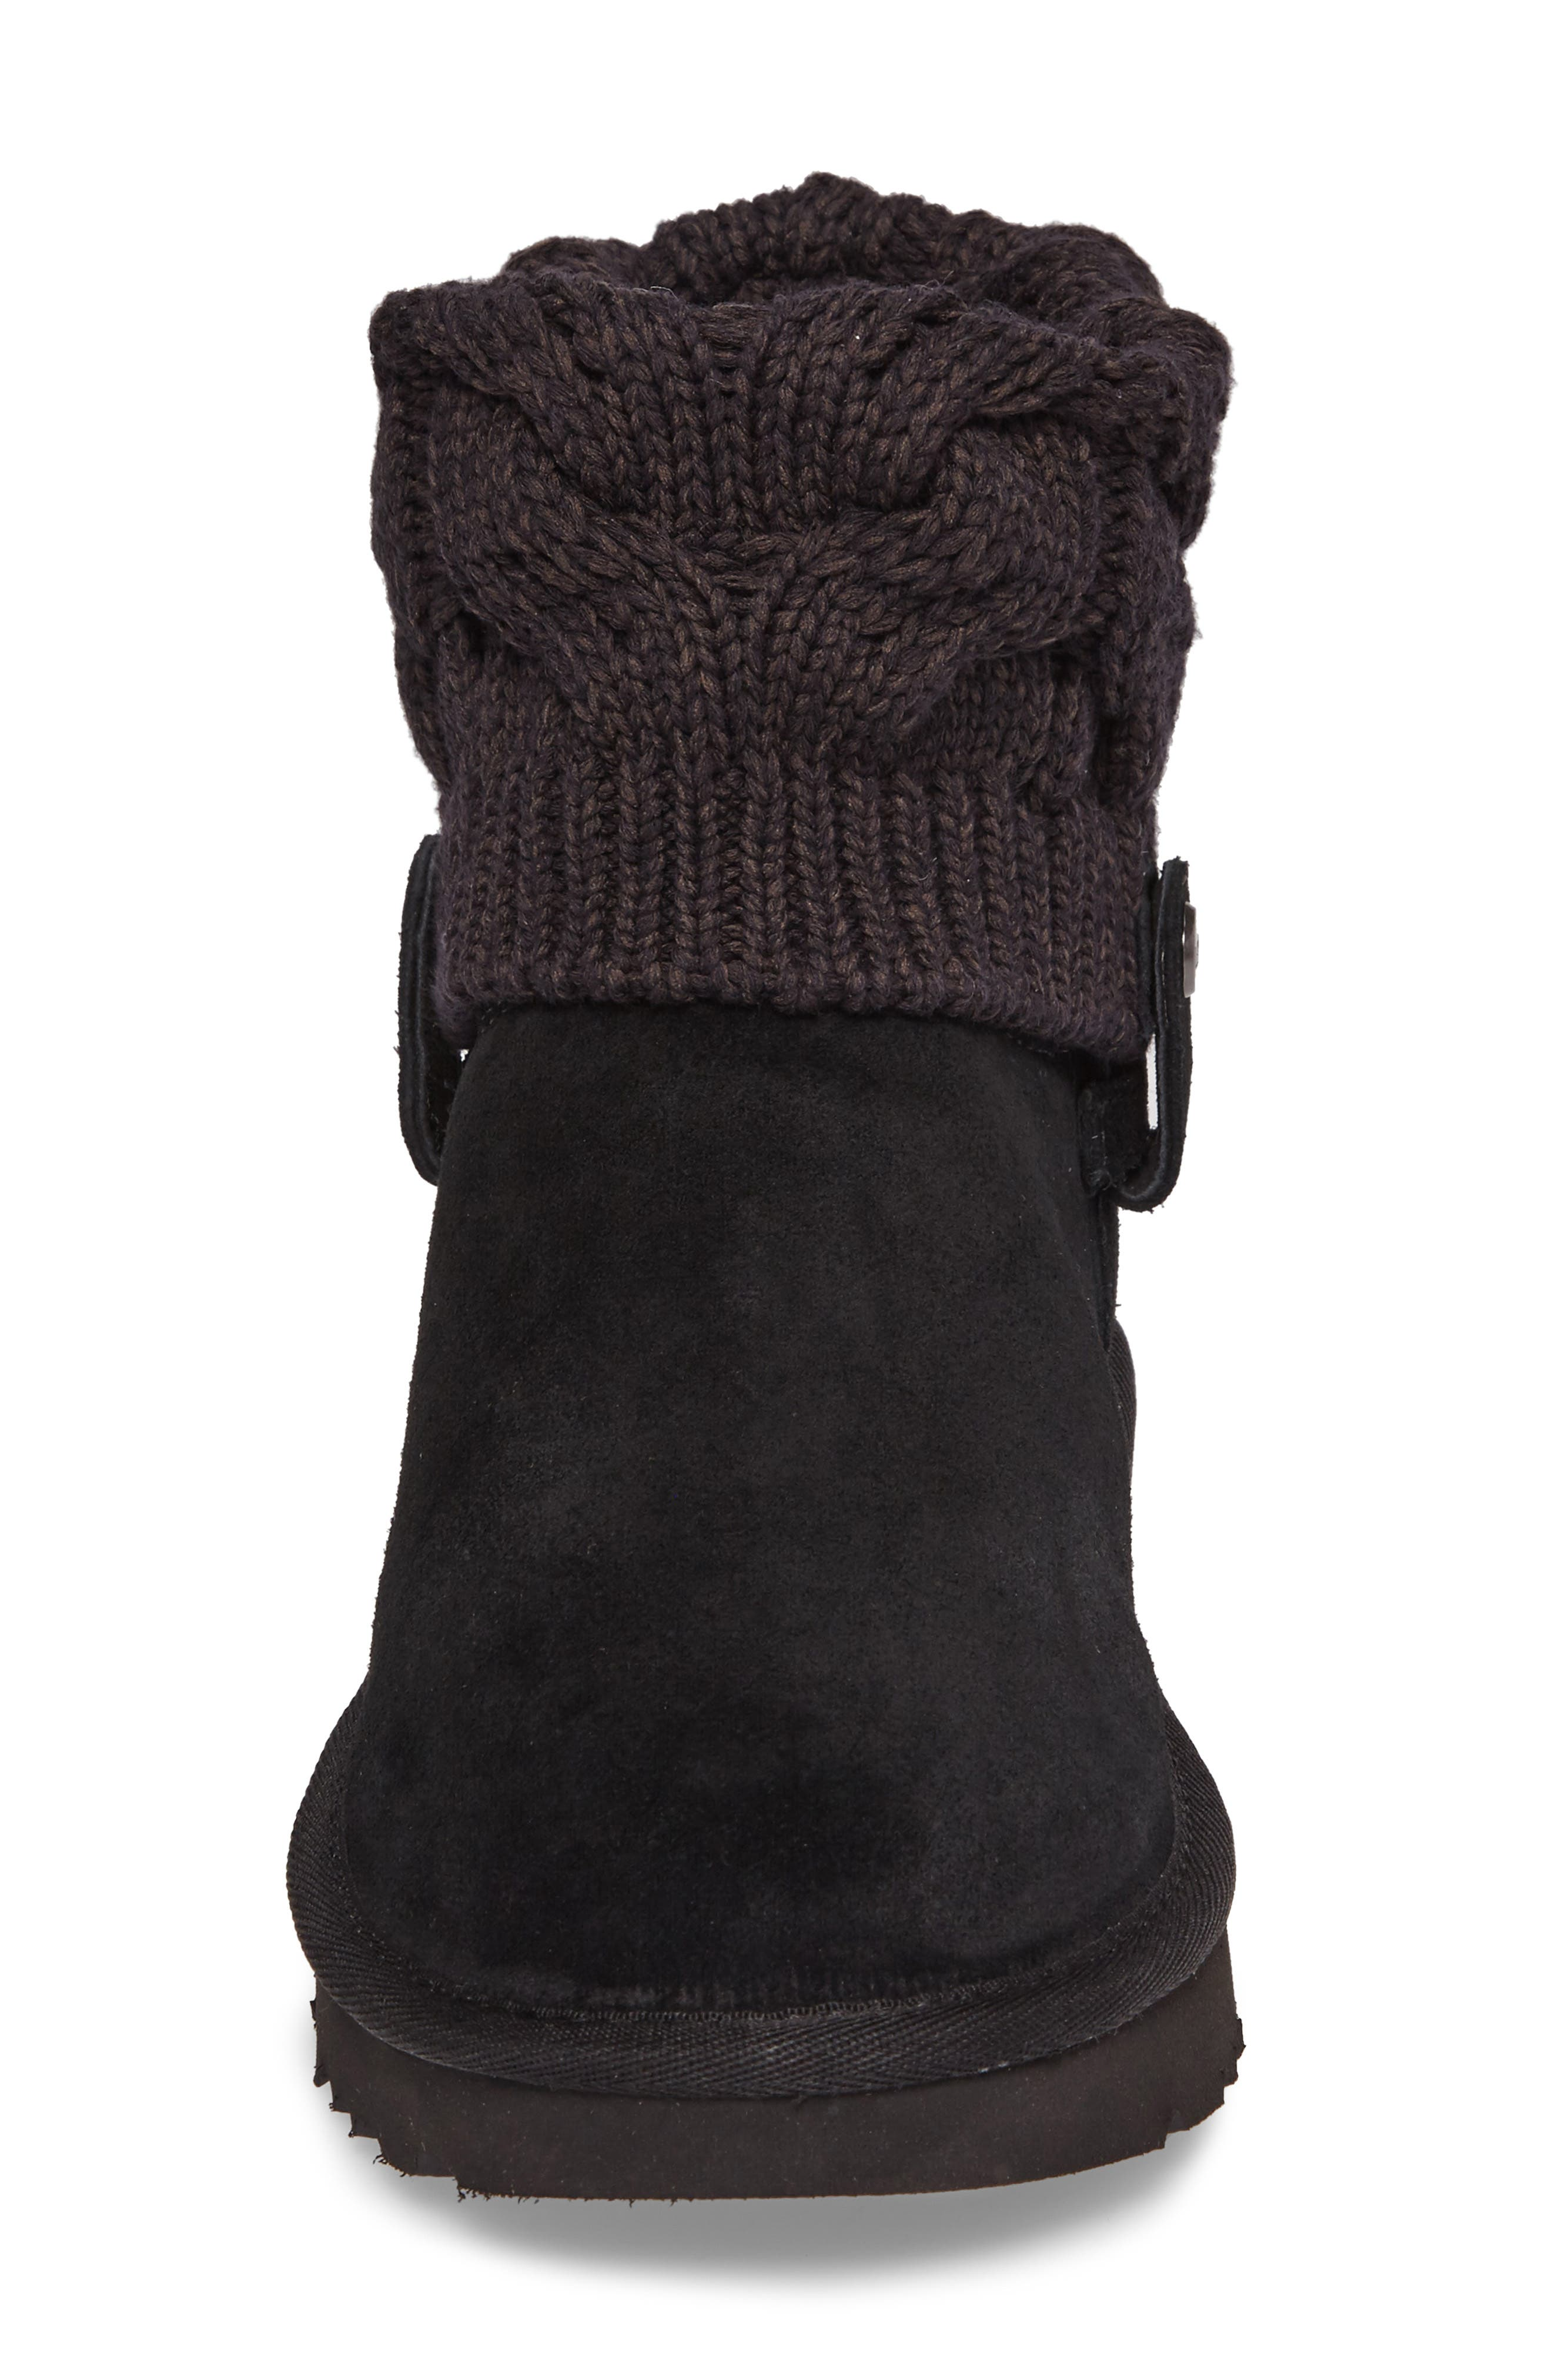 Saela Knit Cuff Boot,                             Alternate thumbnail 4, color,                             Black Suede